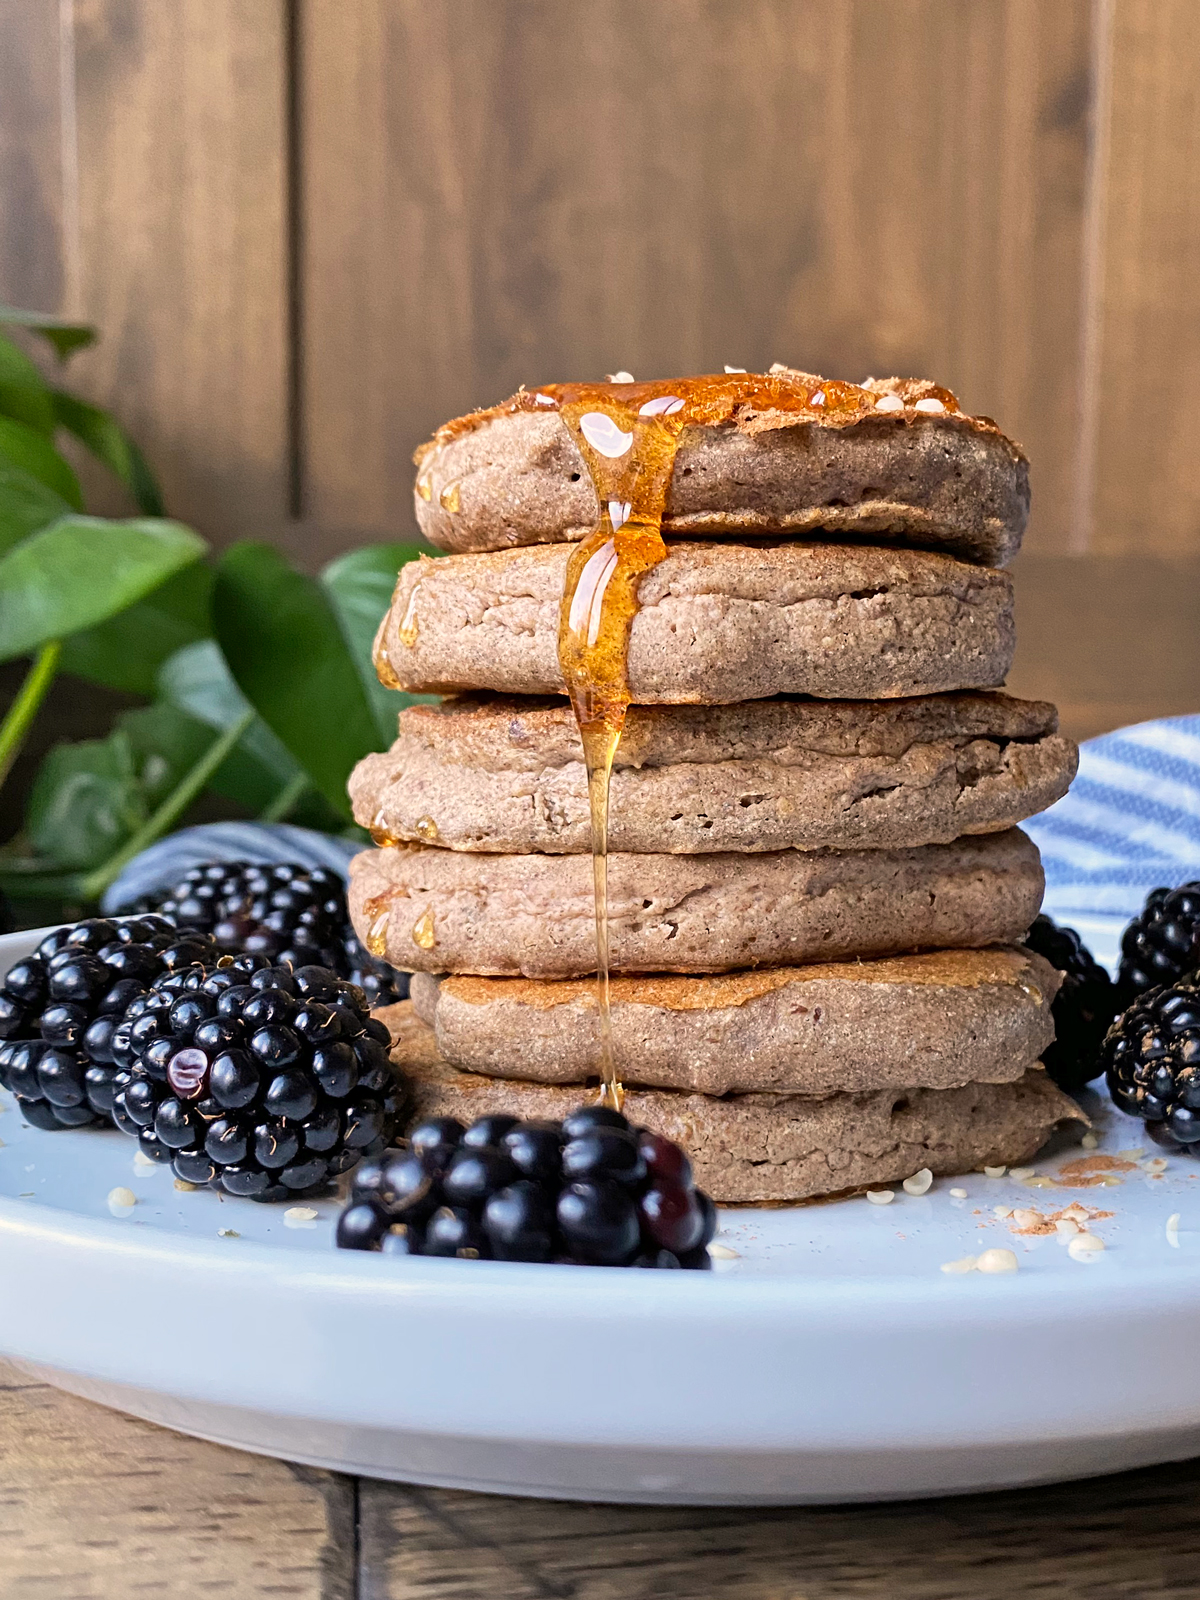 A-stack-of-plantain-pancakes-with-blackberries-and-honey